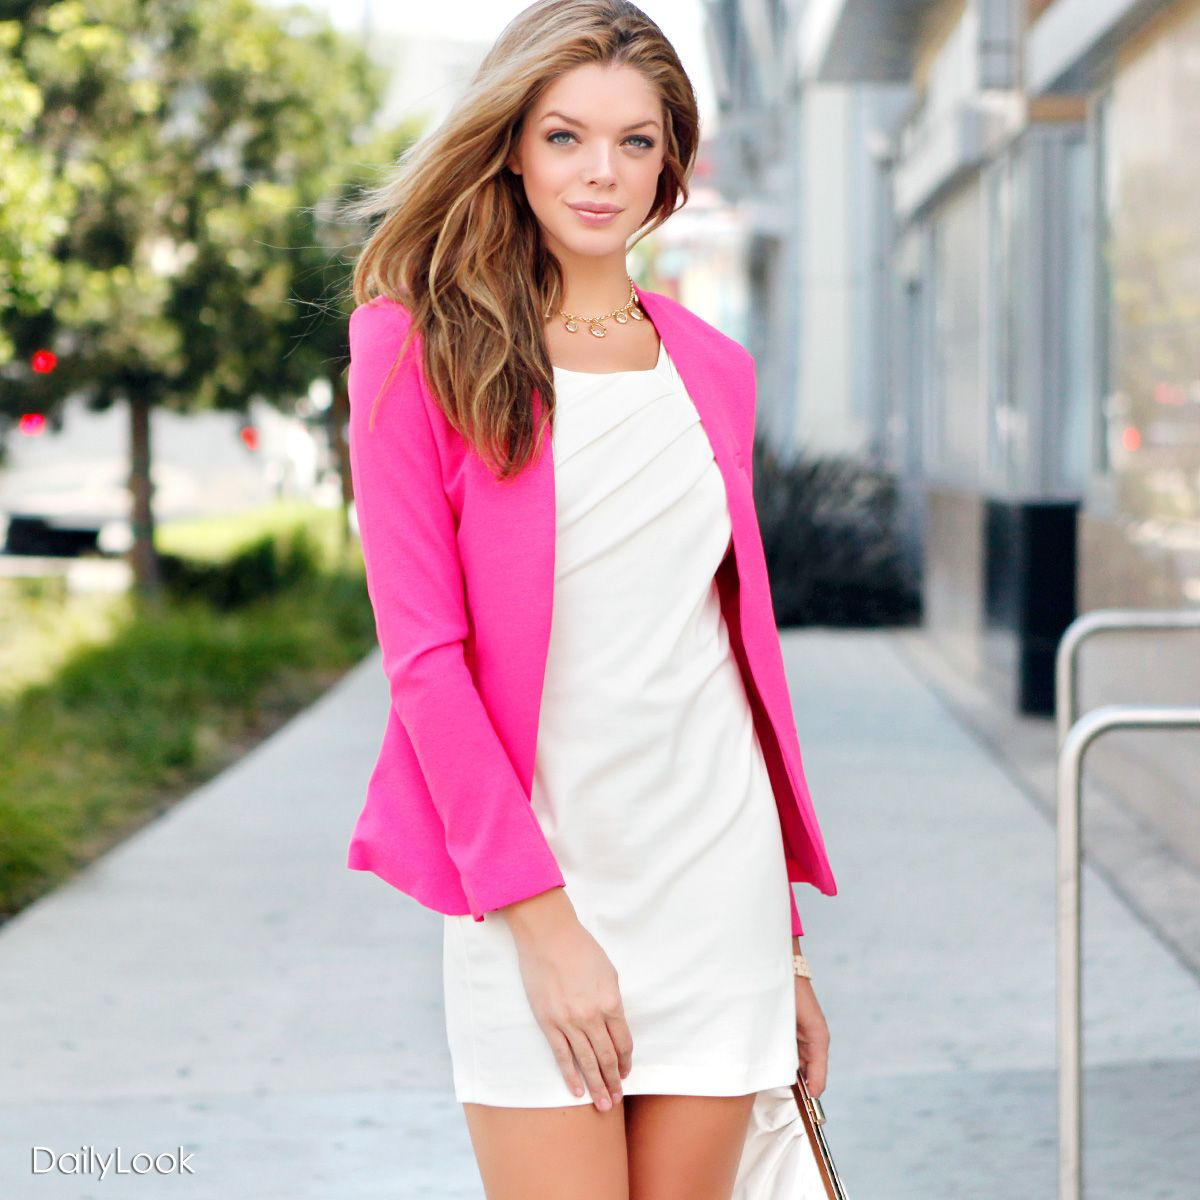 Oh, how I love pink blazers. Wish I could wear what I wanted to work